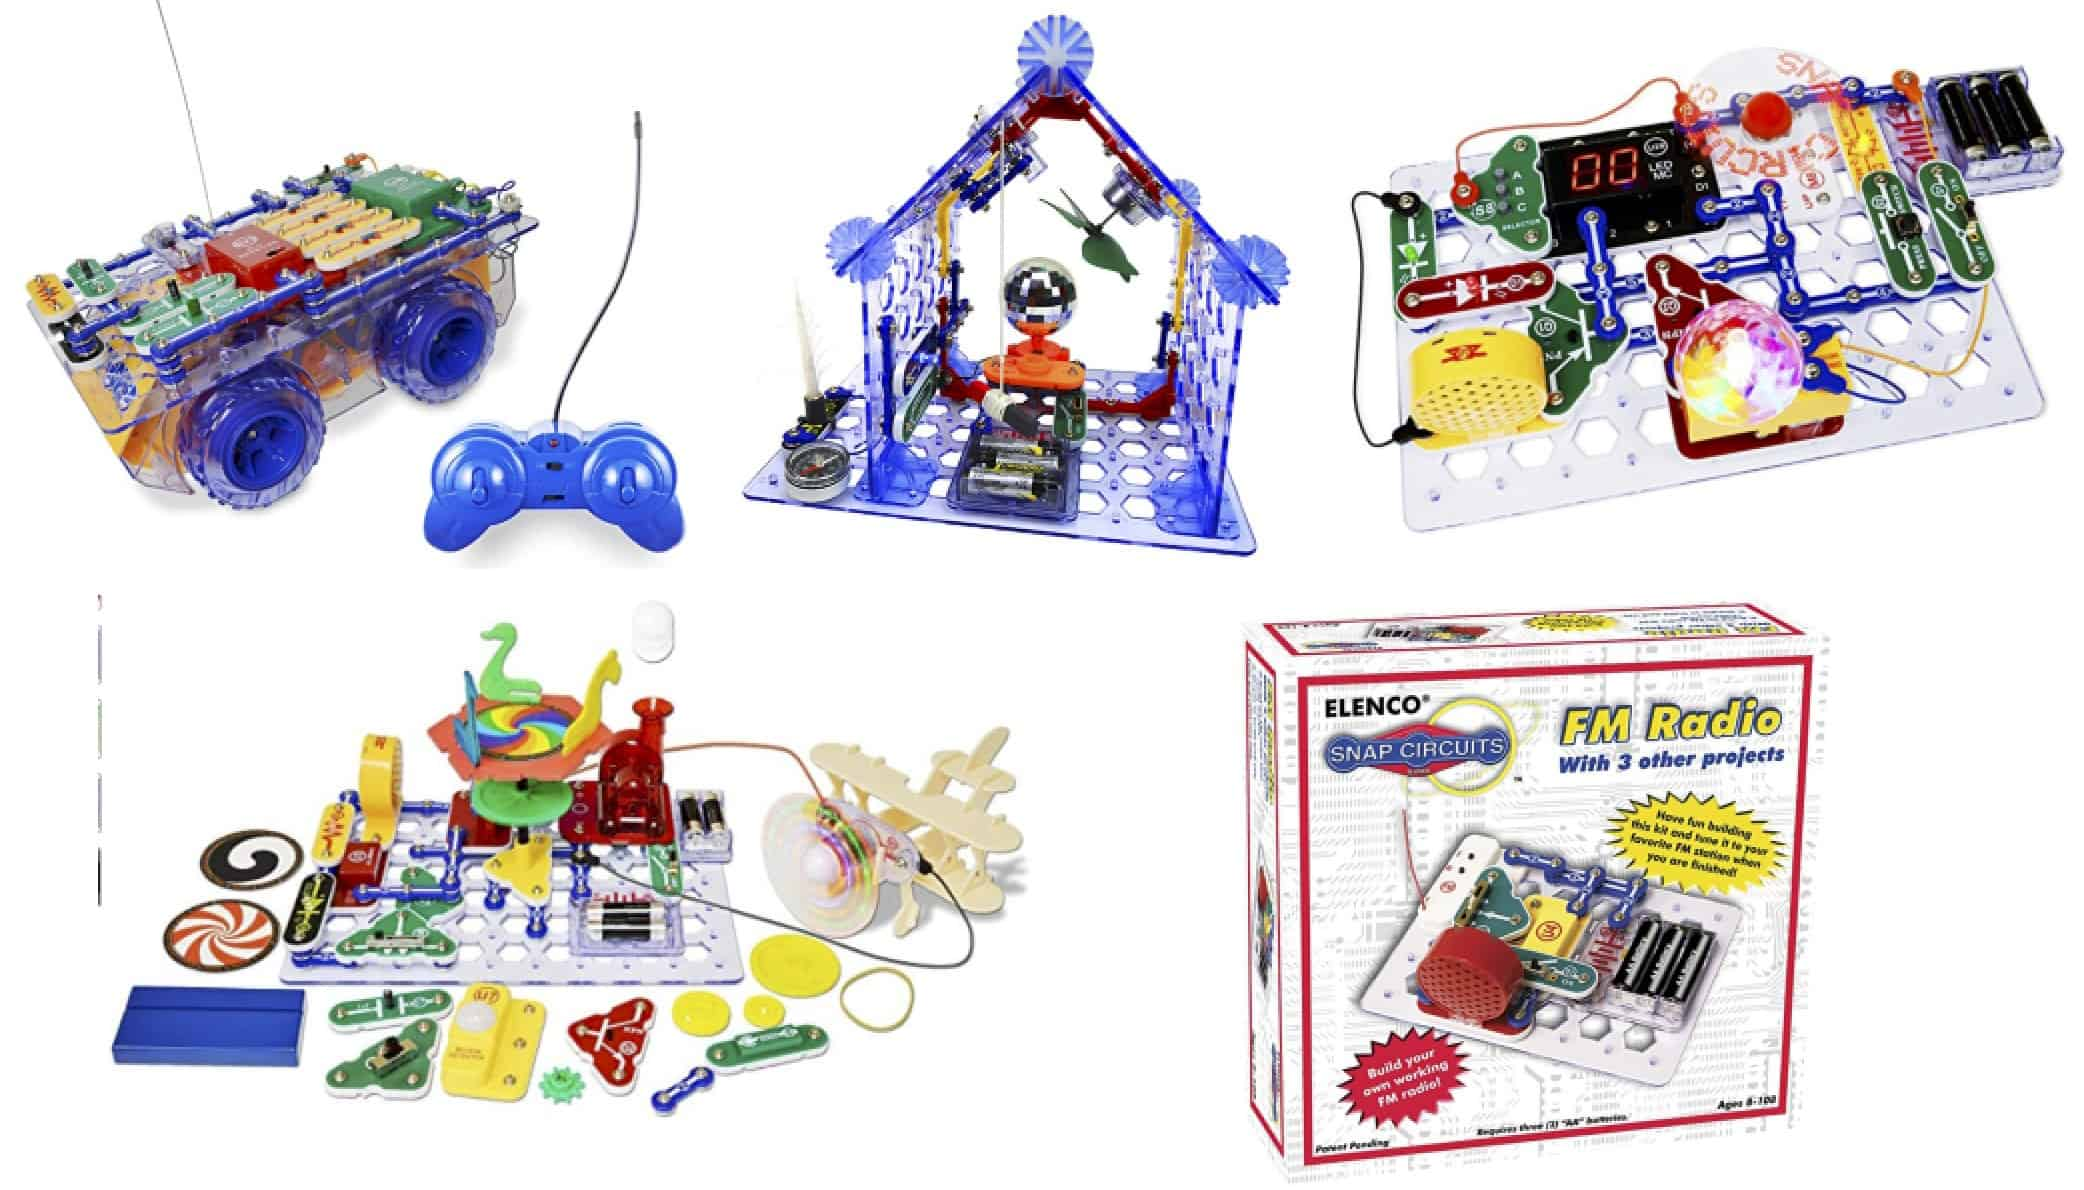 Snap Circuits STEM kits for kids